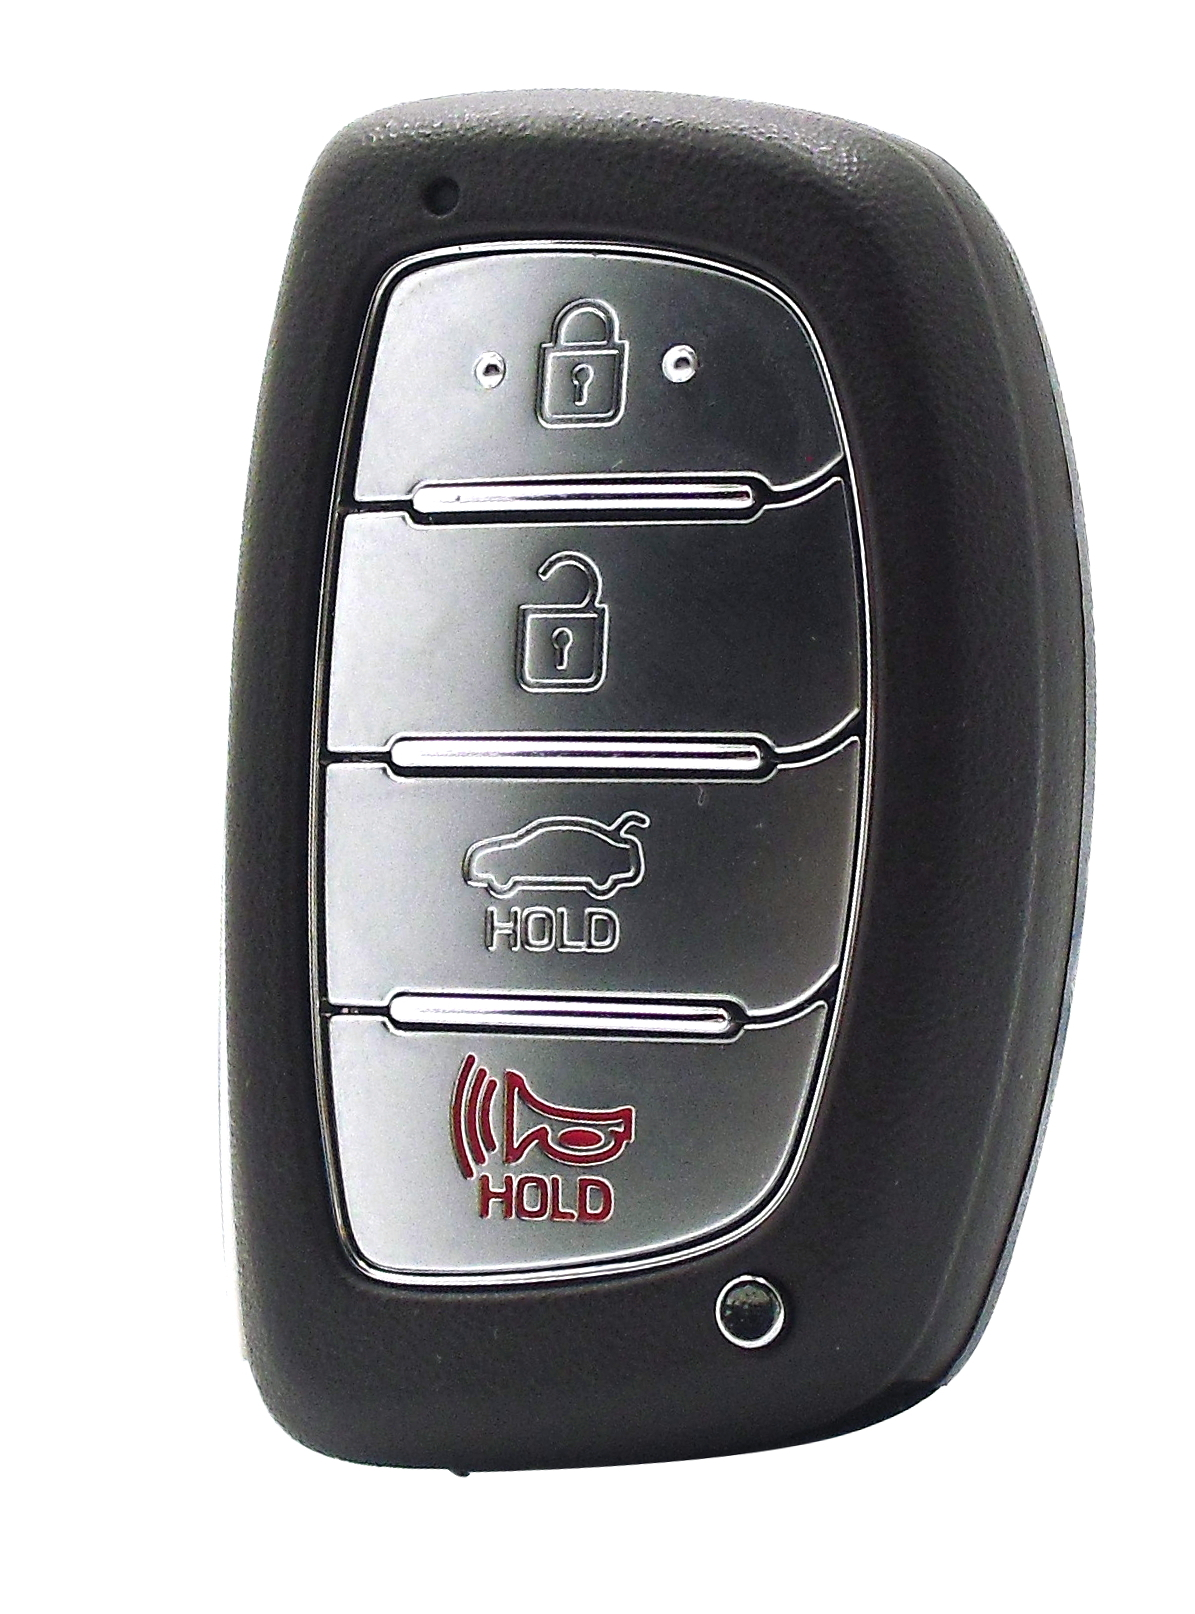 Hyundai Sonata Smart Key - 4 Button